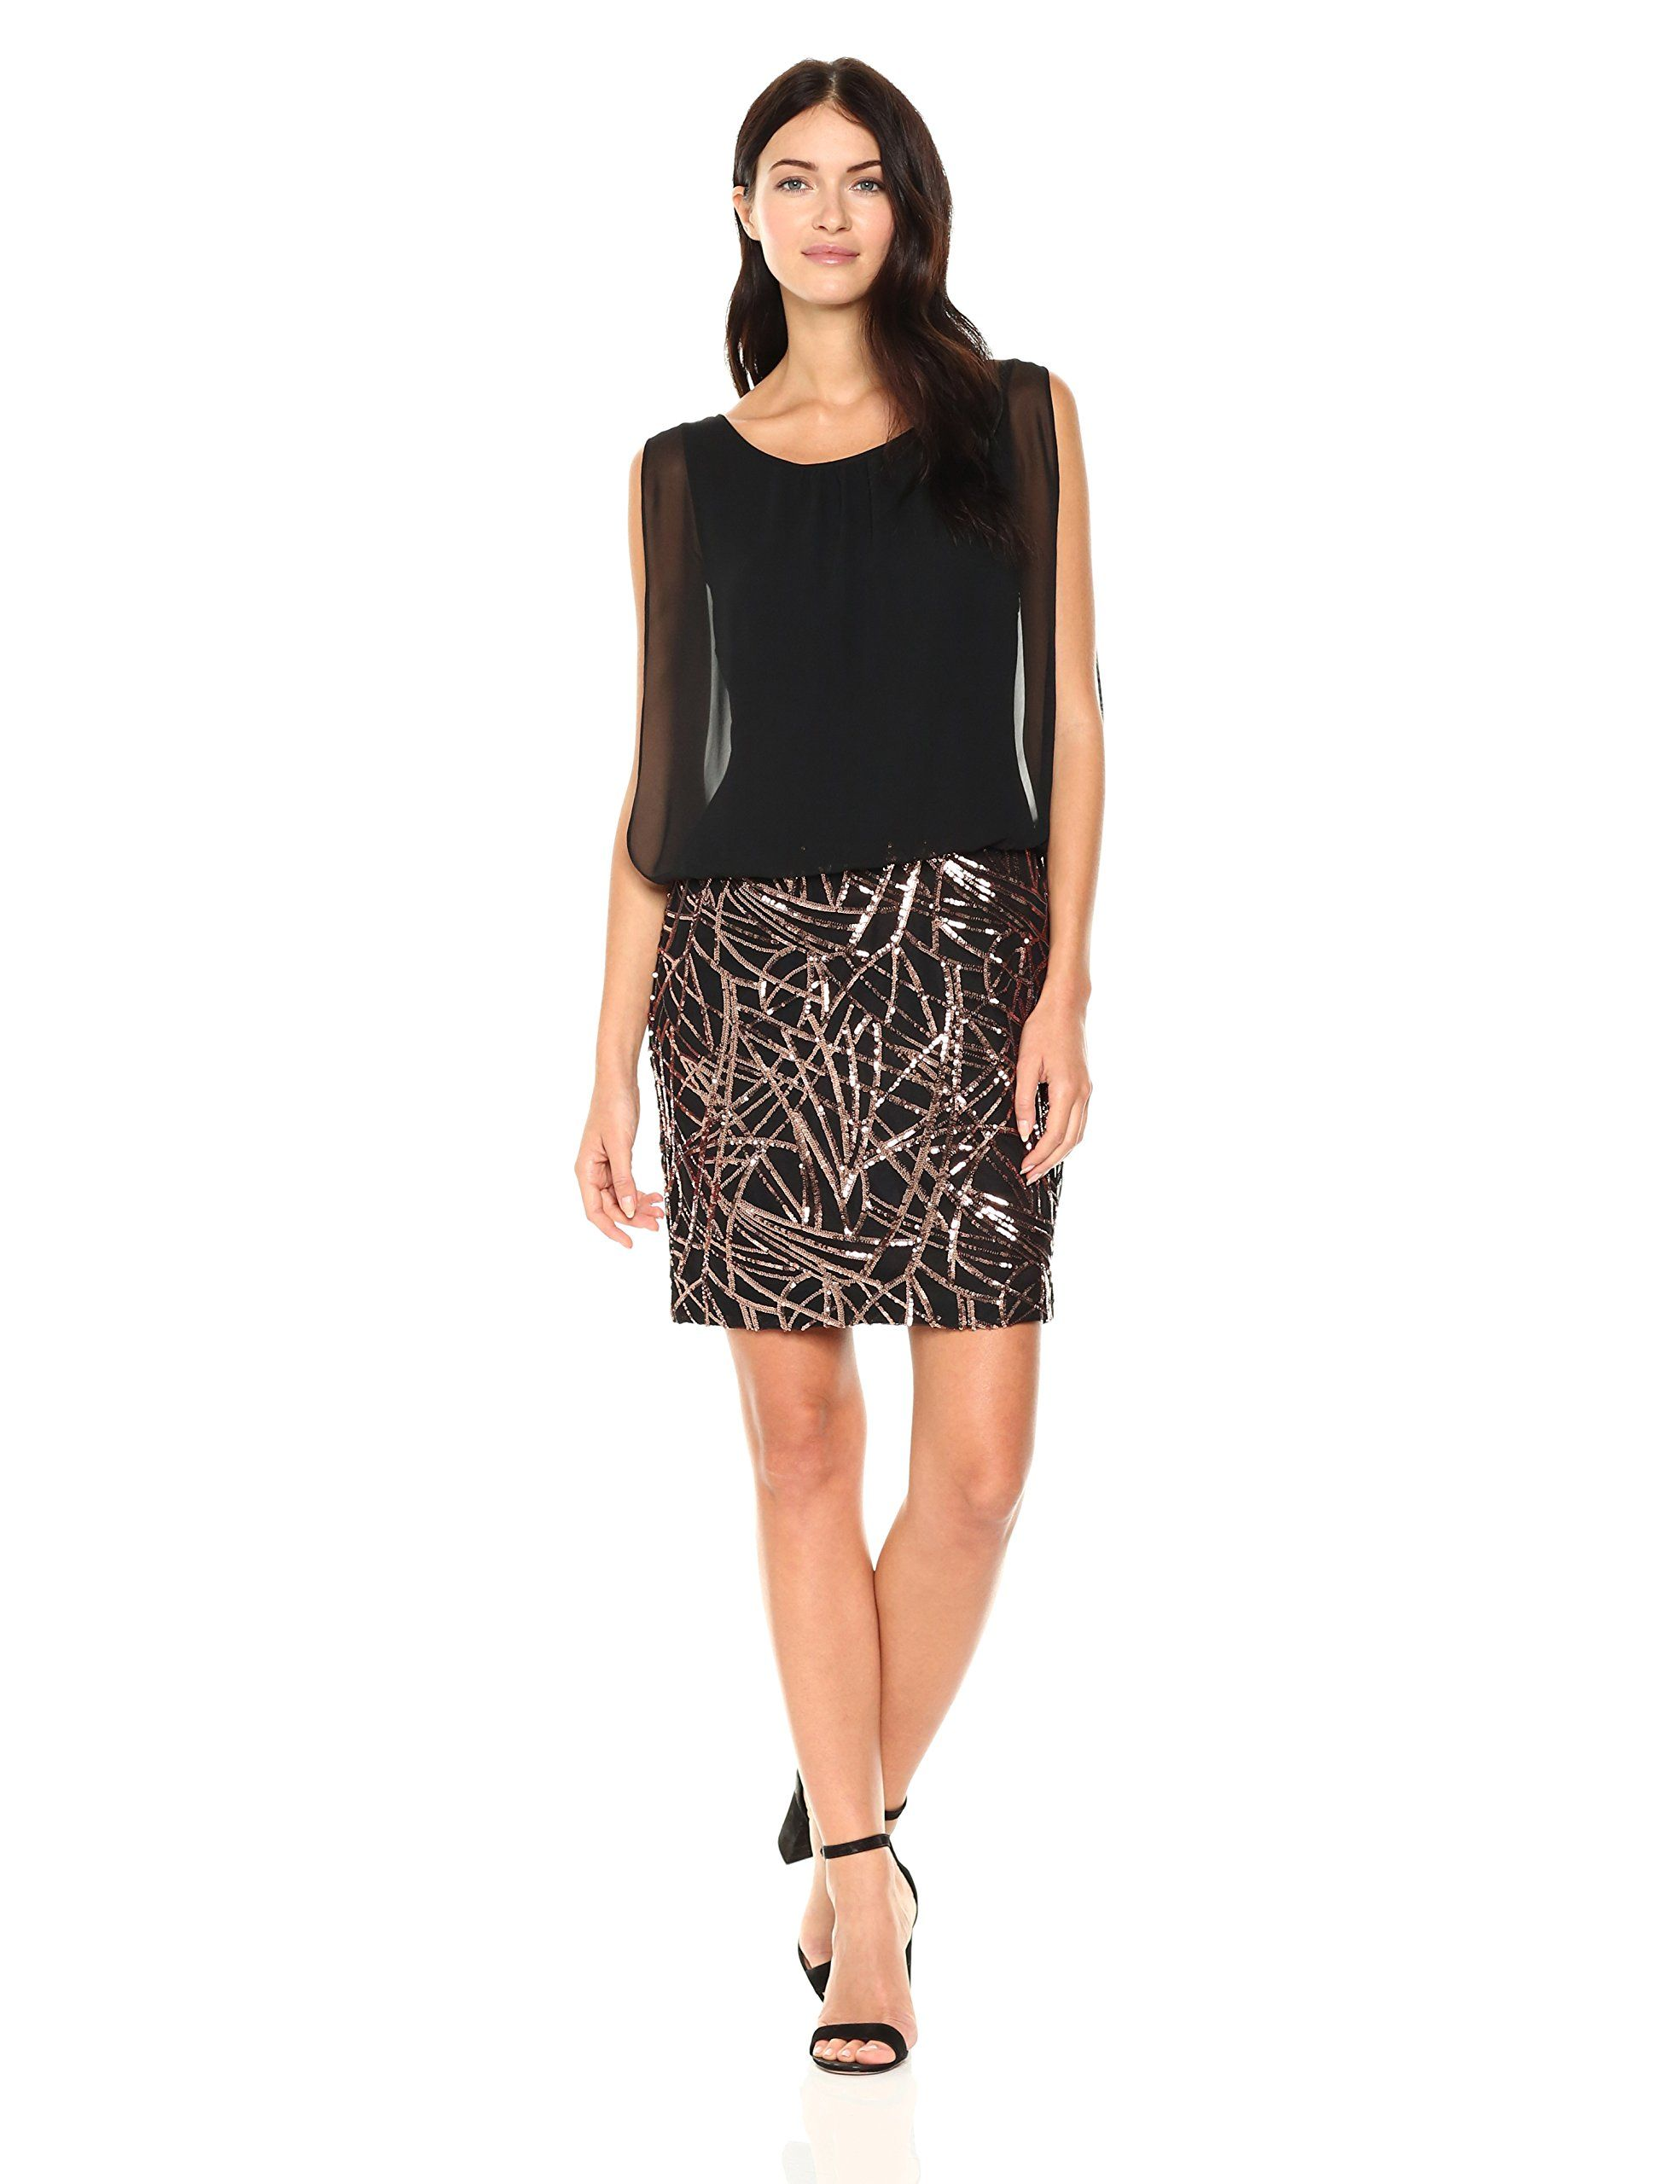 05376f21609d2 Calvin Klein Womens Sleeveless Dress with Embroidered Skirt Black Copper 10  -- Click on the image for additional details-affiliate link.  WomenDresses